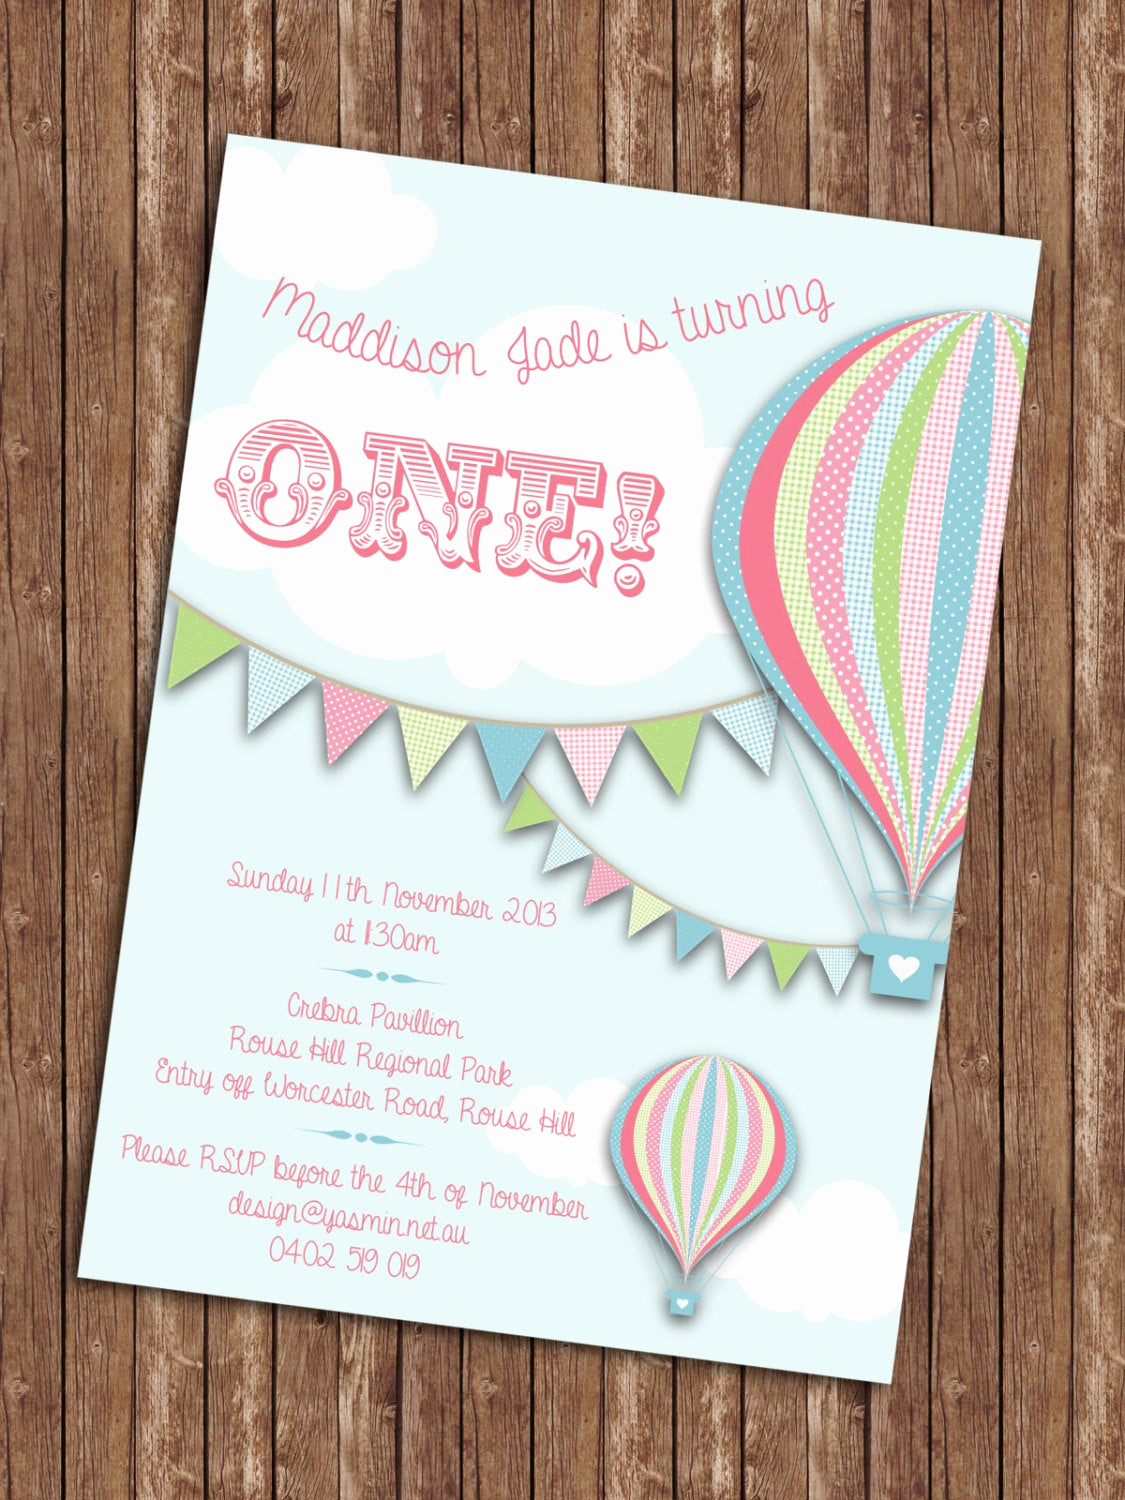 Hot Air Balloon Invitation Elegant Hot Air Balloon Birthday Invitation